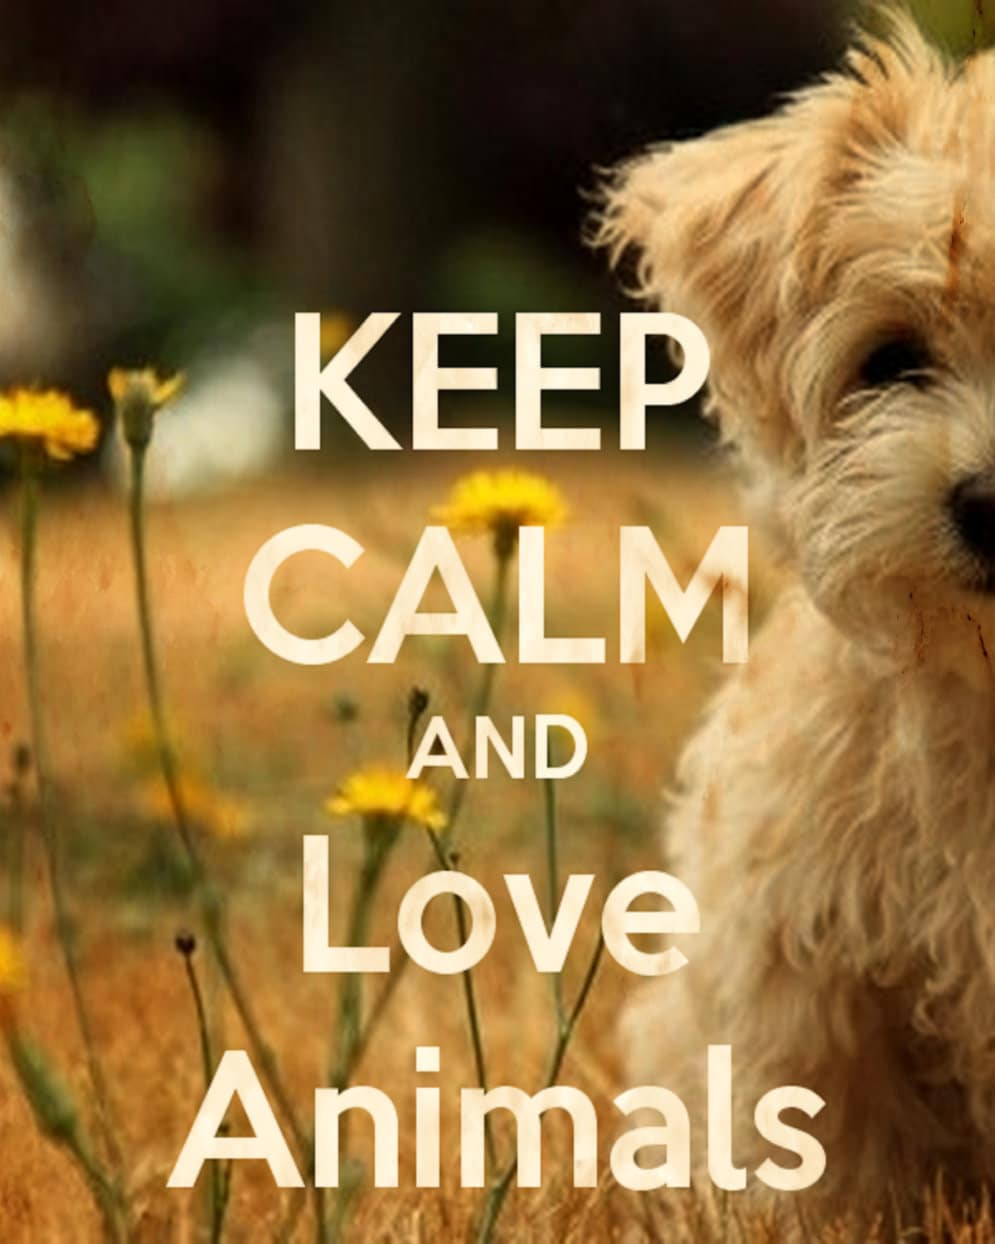 Keep Calm and Love Animals Print for Home or Office Wall Art | Etsy